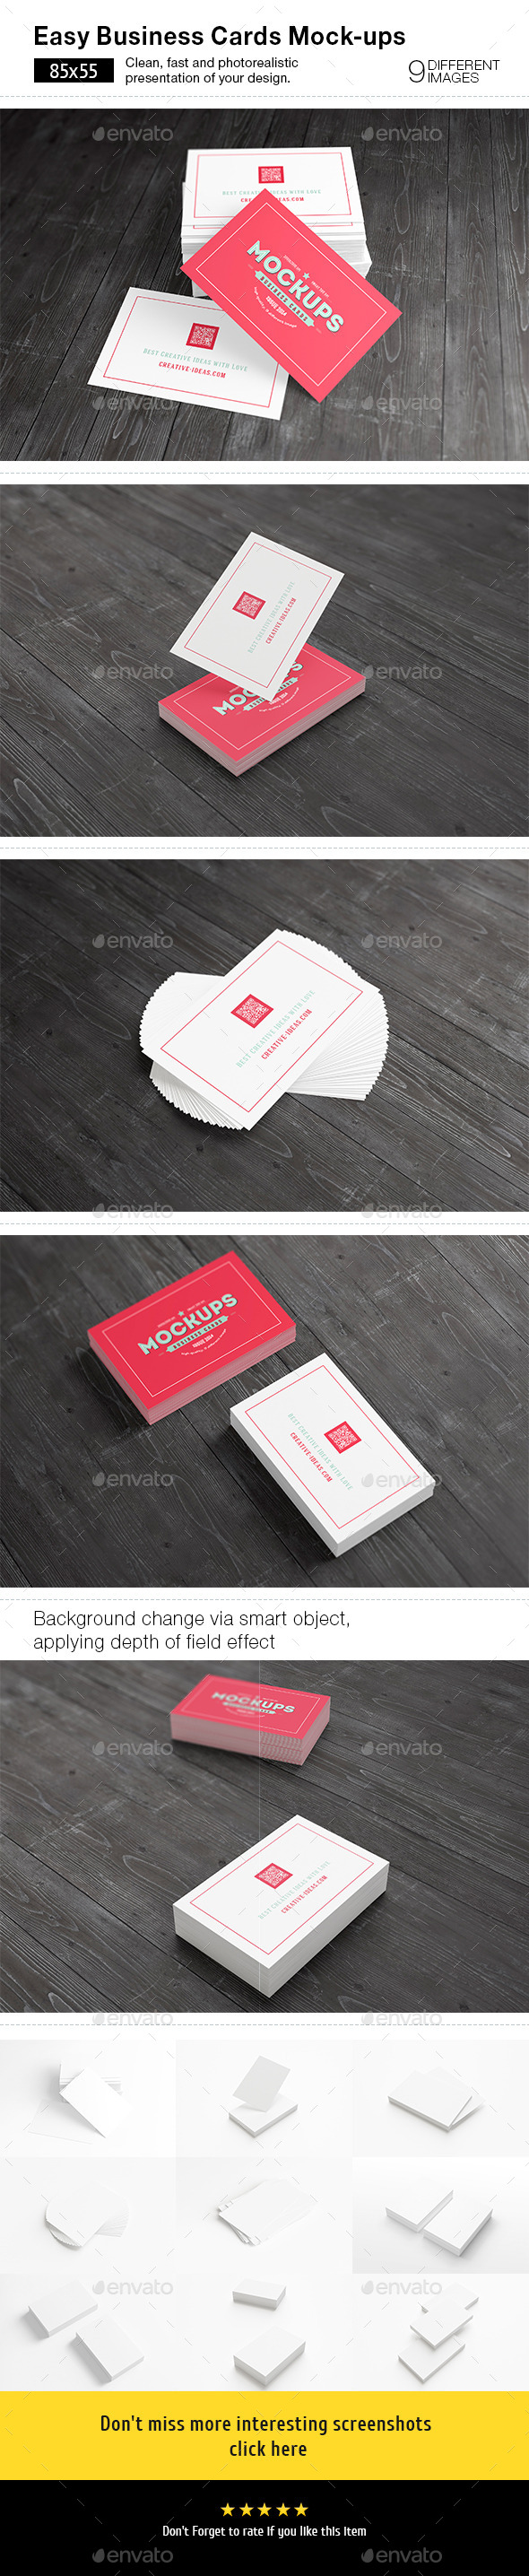 [85x55] Business Cards Mock-ups - Business Cards Print